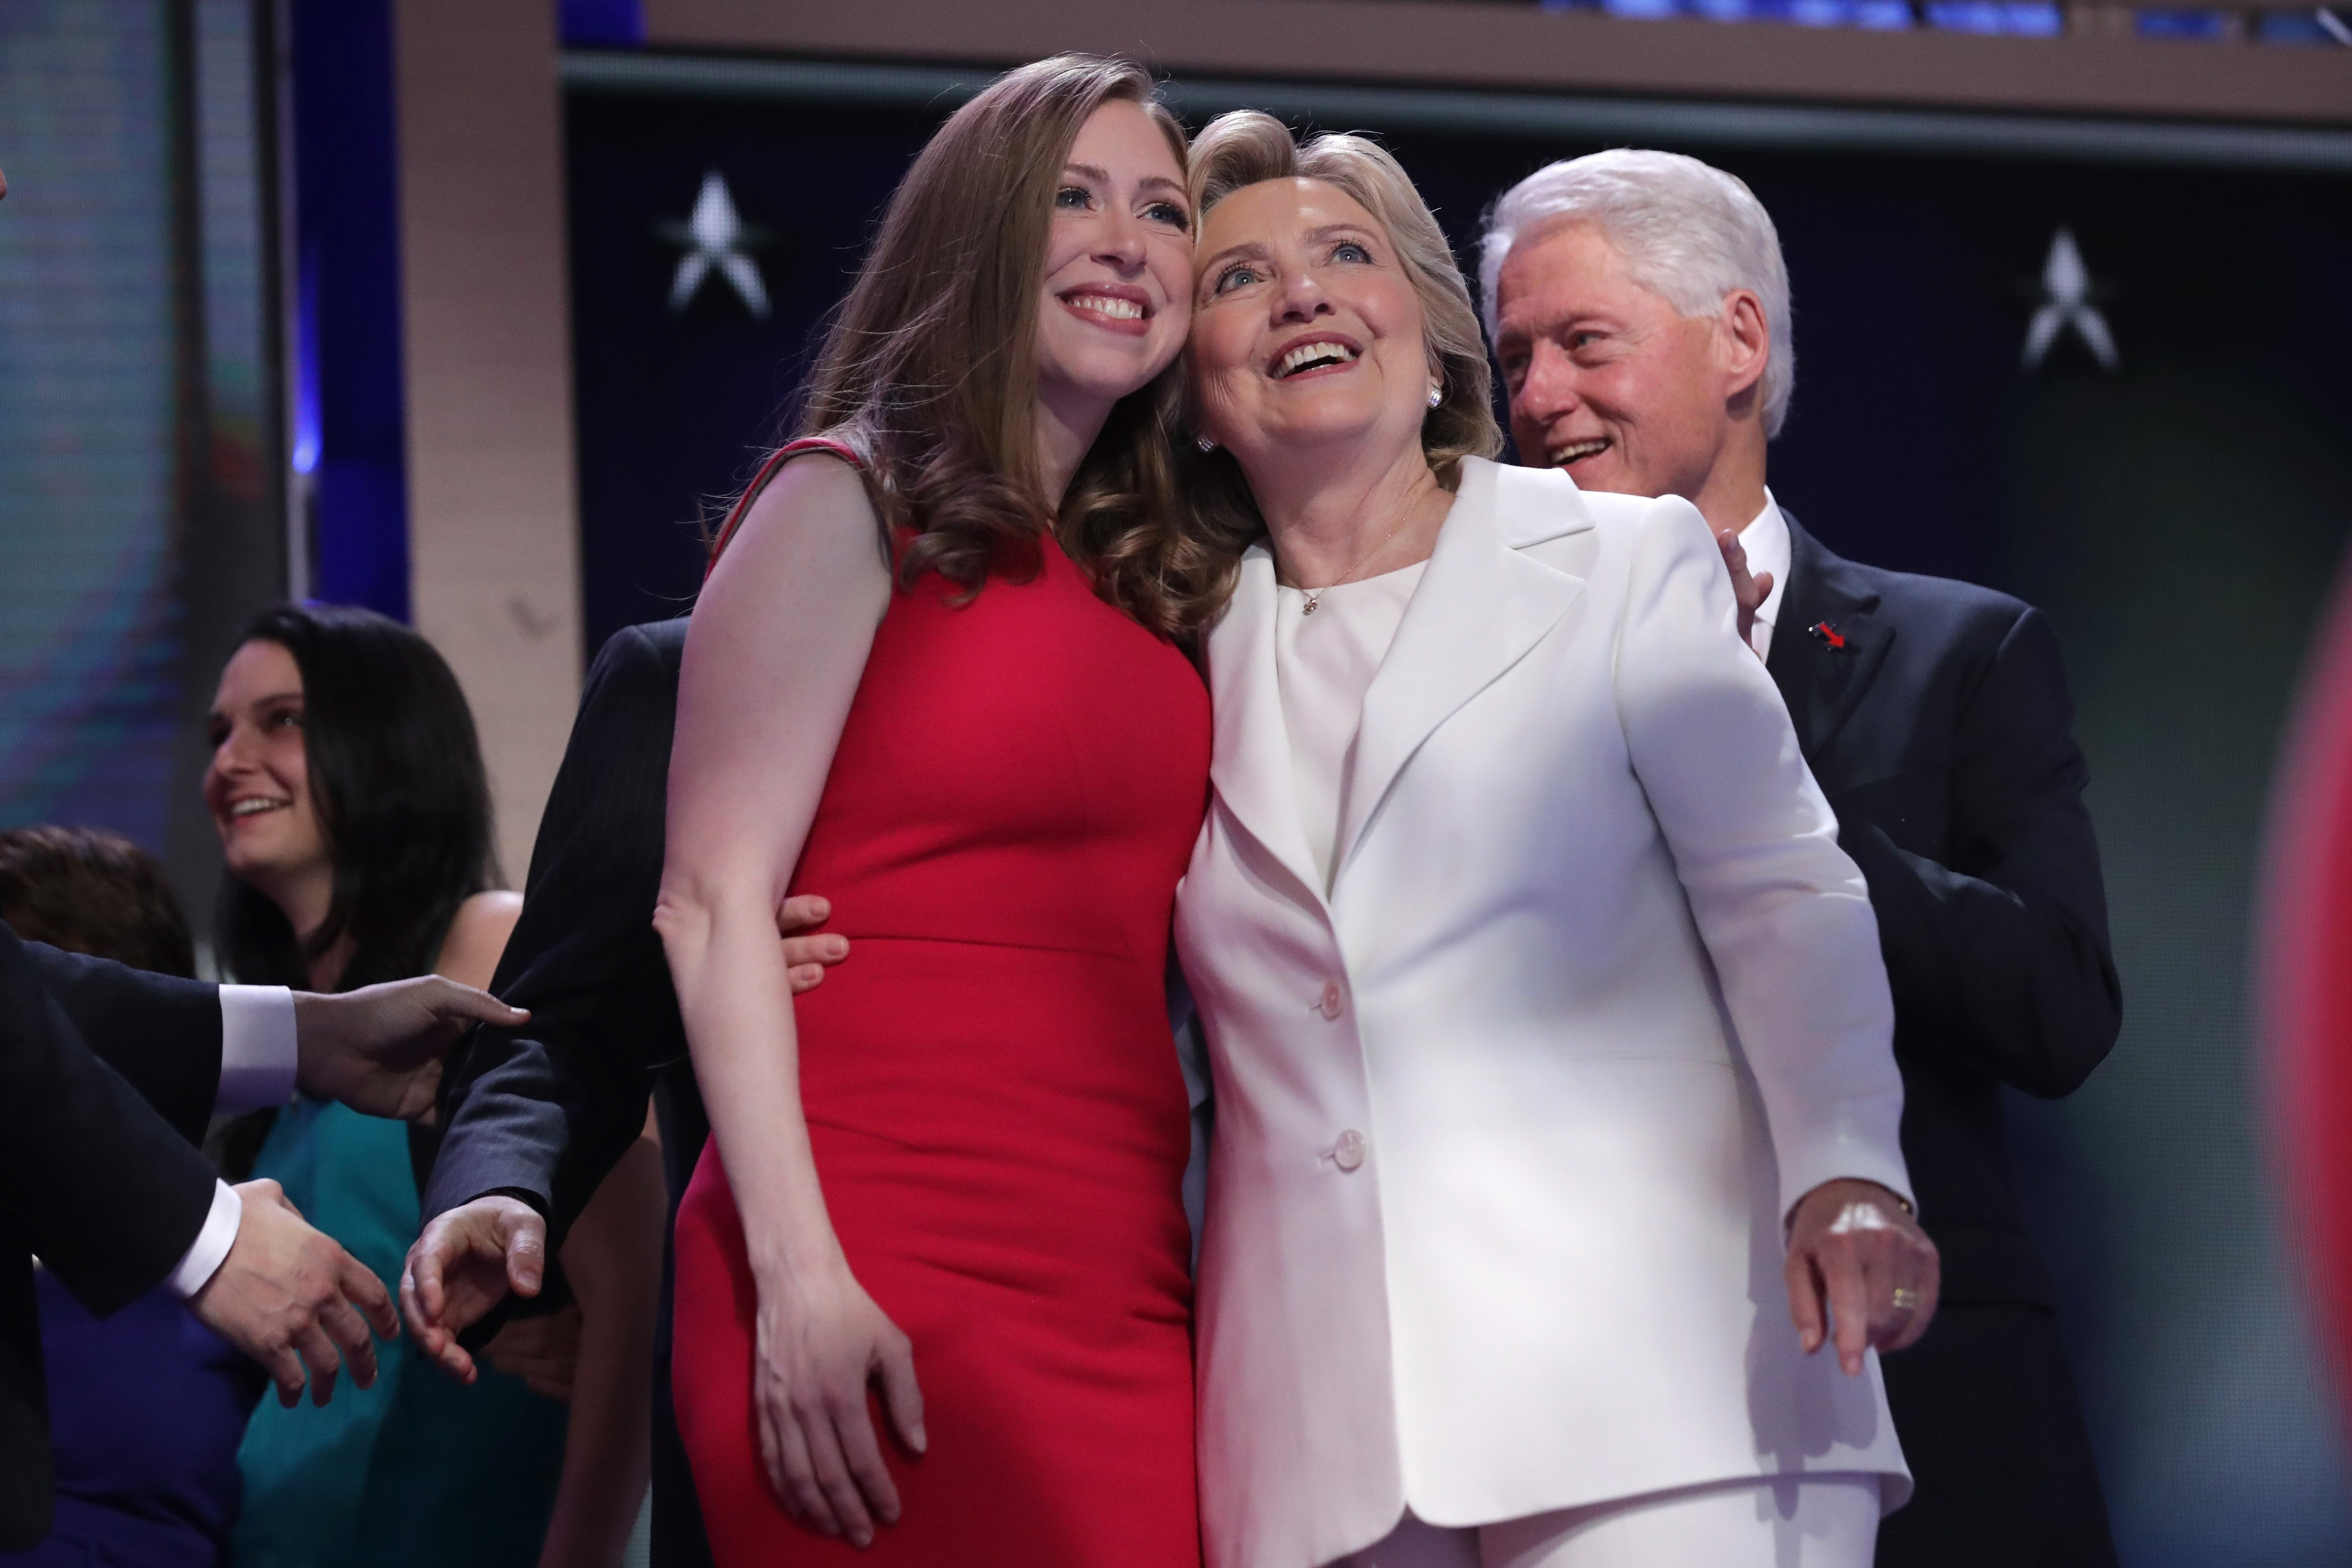 Hillary Clinton and her daughter Chelsea Clinton | Photo: Getty Images